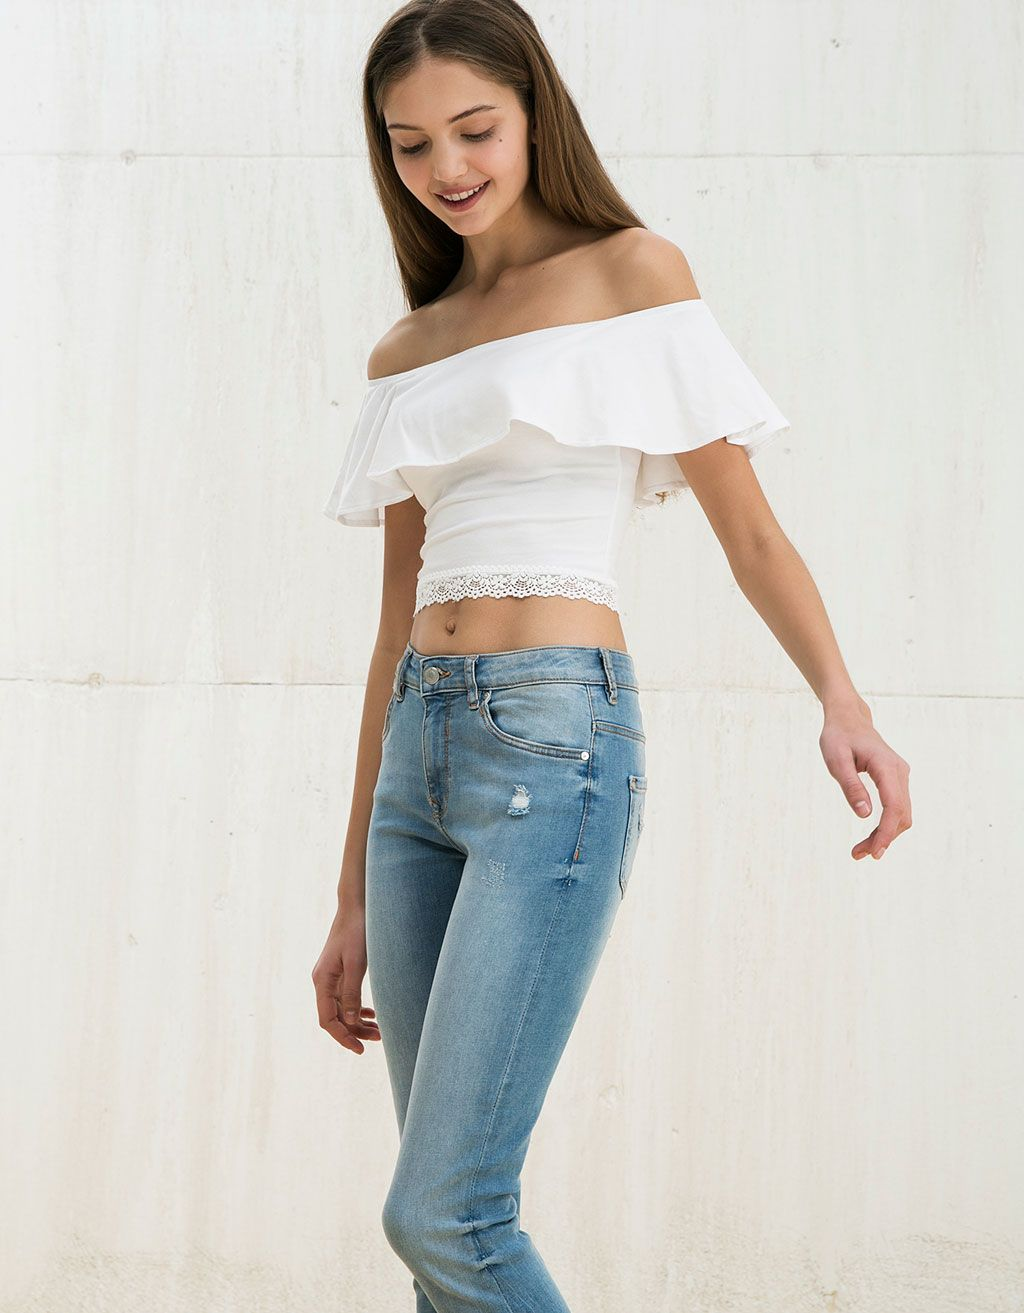 ce52bea15aac BSK Veracruz lace and ruffle top. Discover this and many more items in  Bershka with new products every week